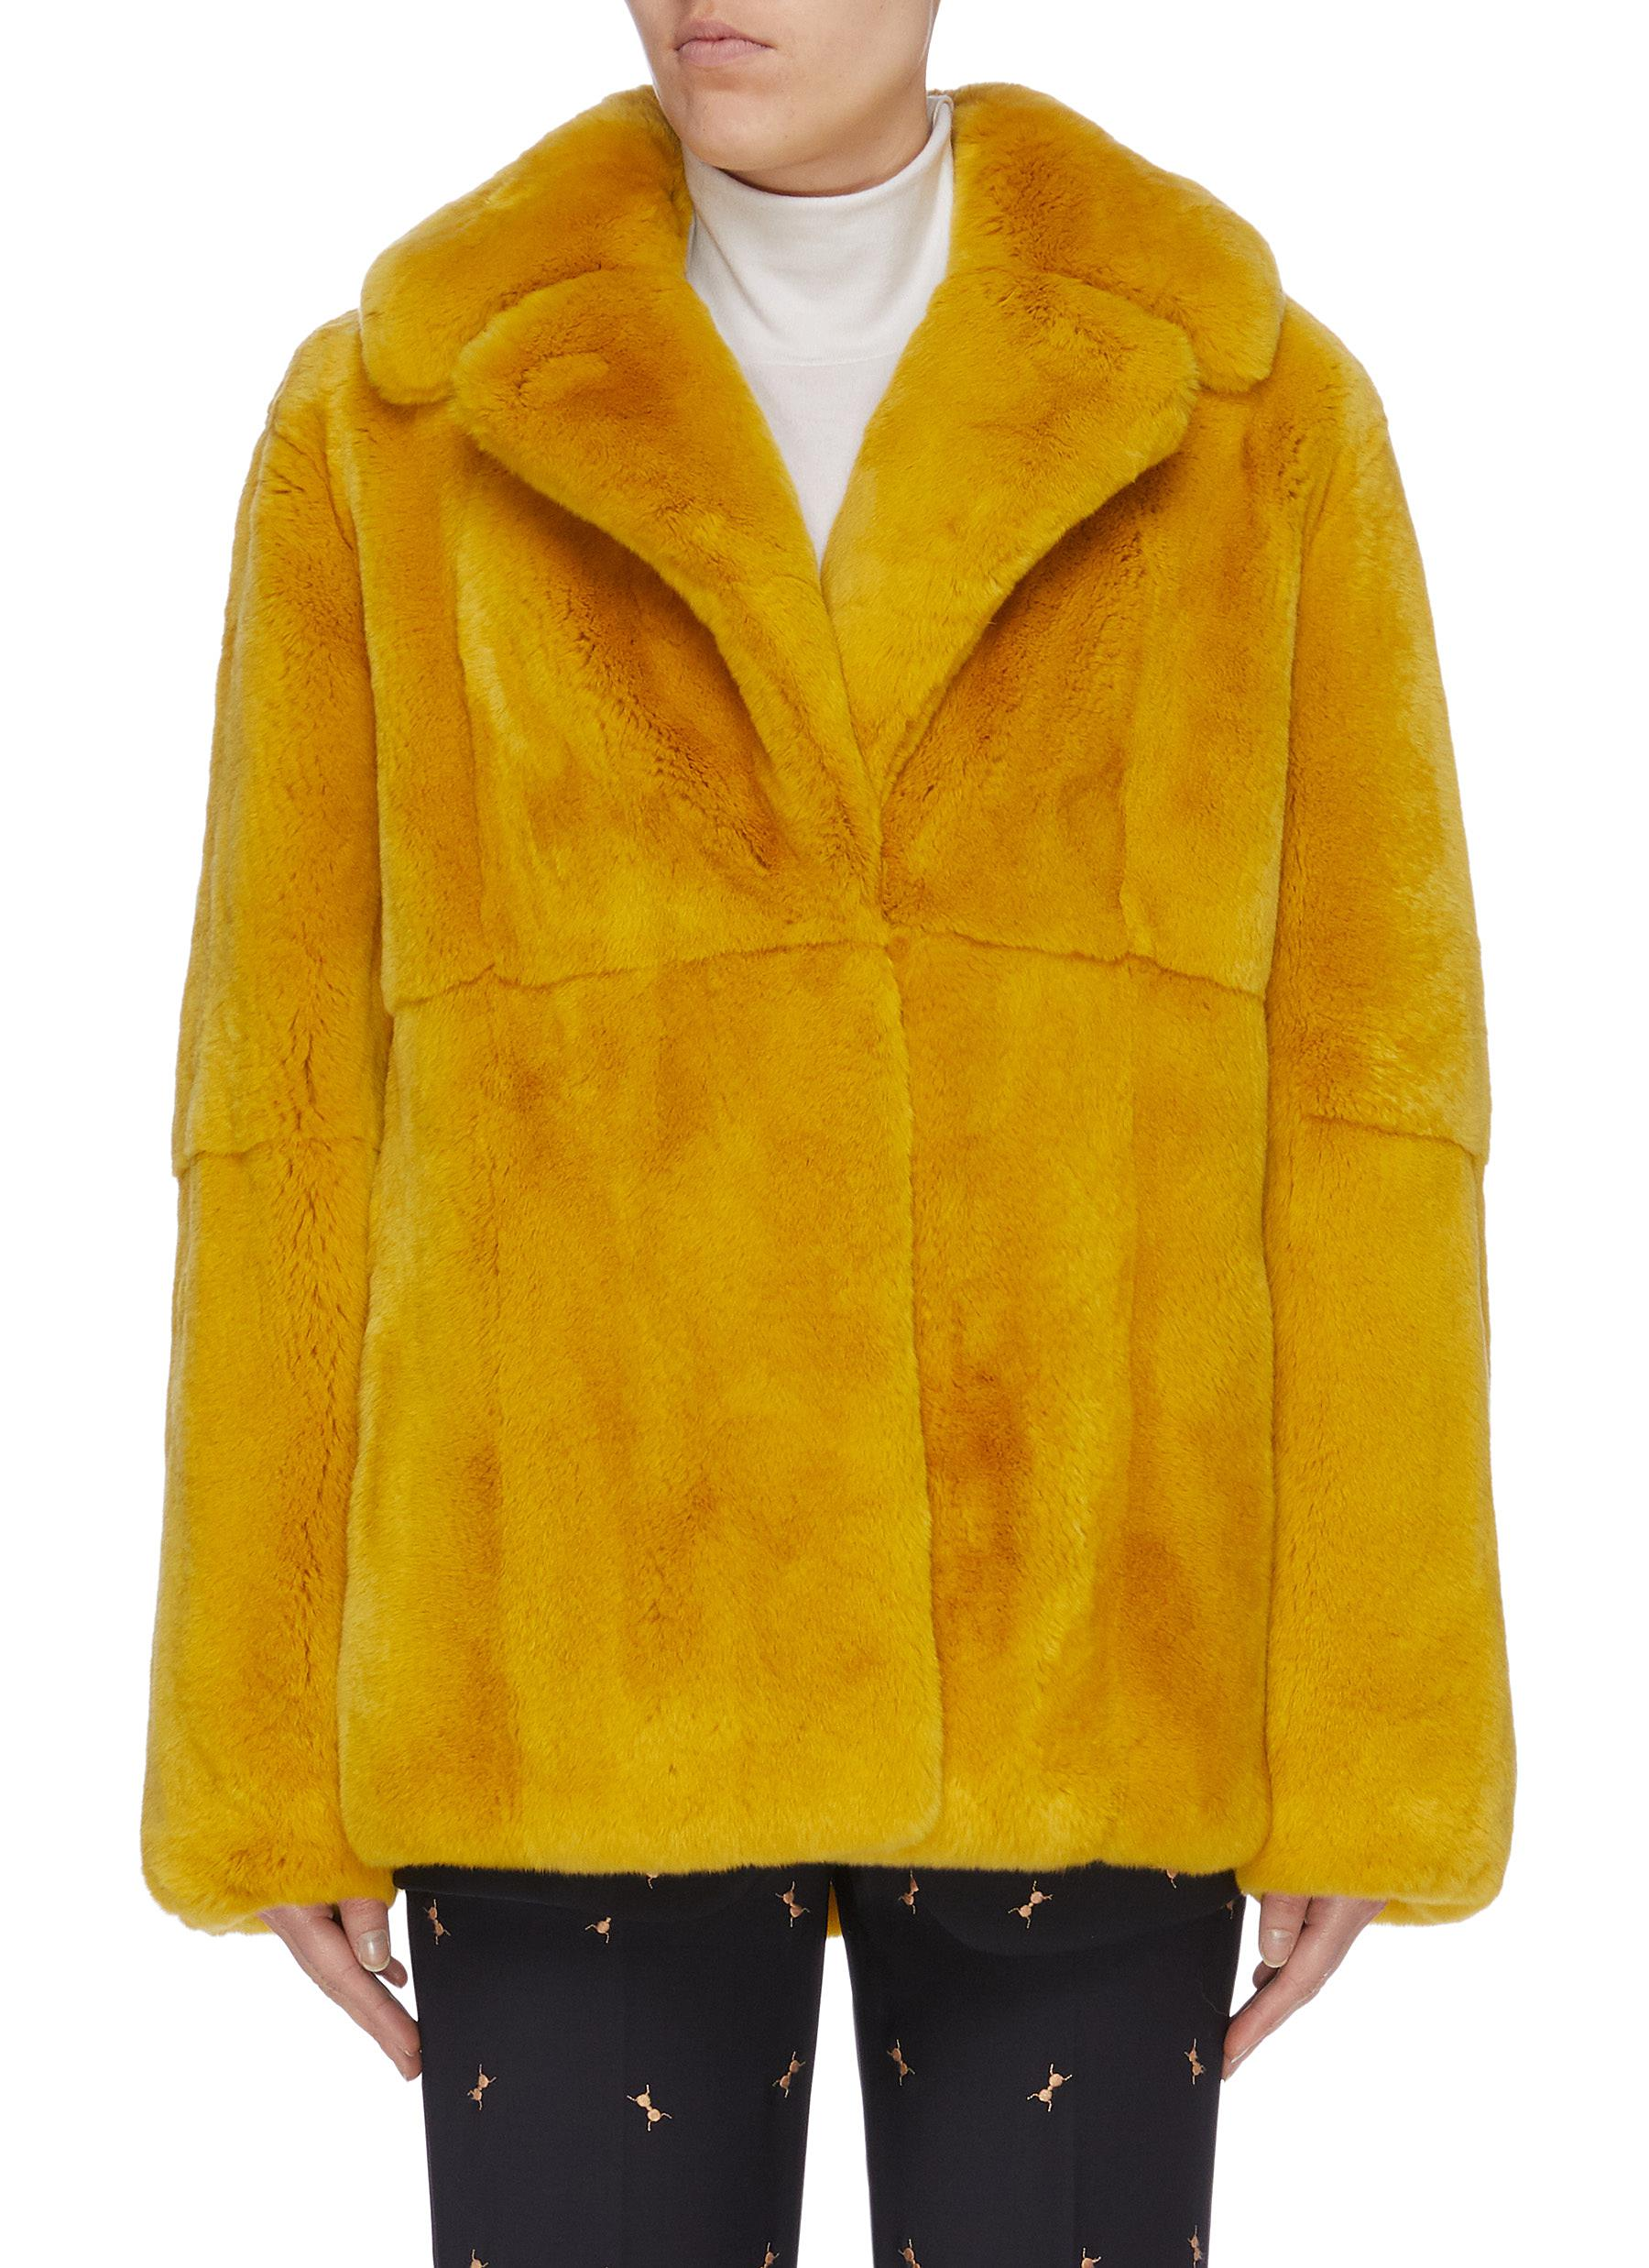 Rabbit fur jacket by Yves Salomon